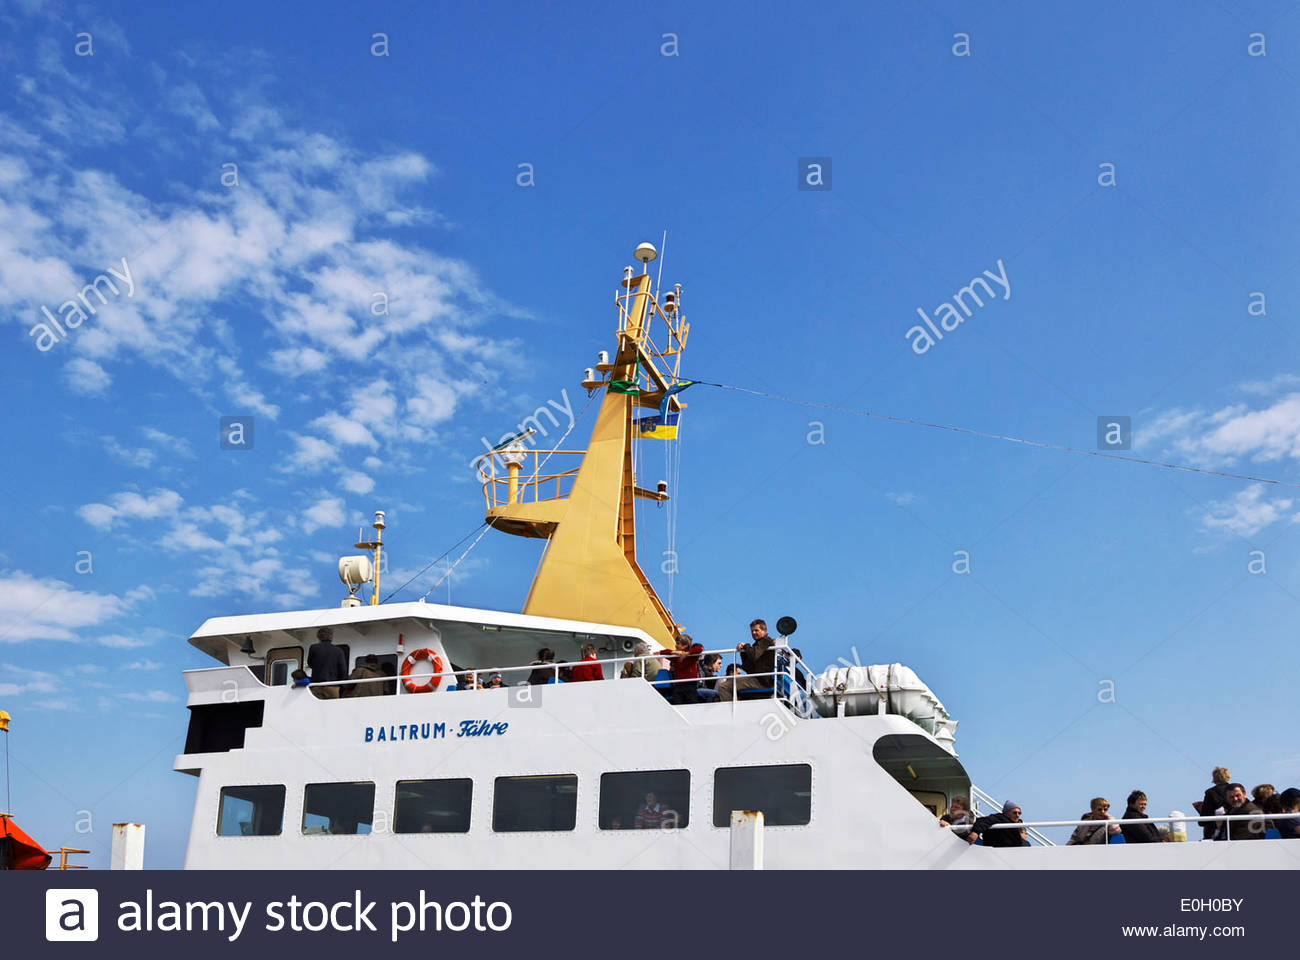 Passengers bound for Insel Baltrum, one of Germany's East Frisian islands on the North Sea coast, await departure Stock Photo